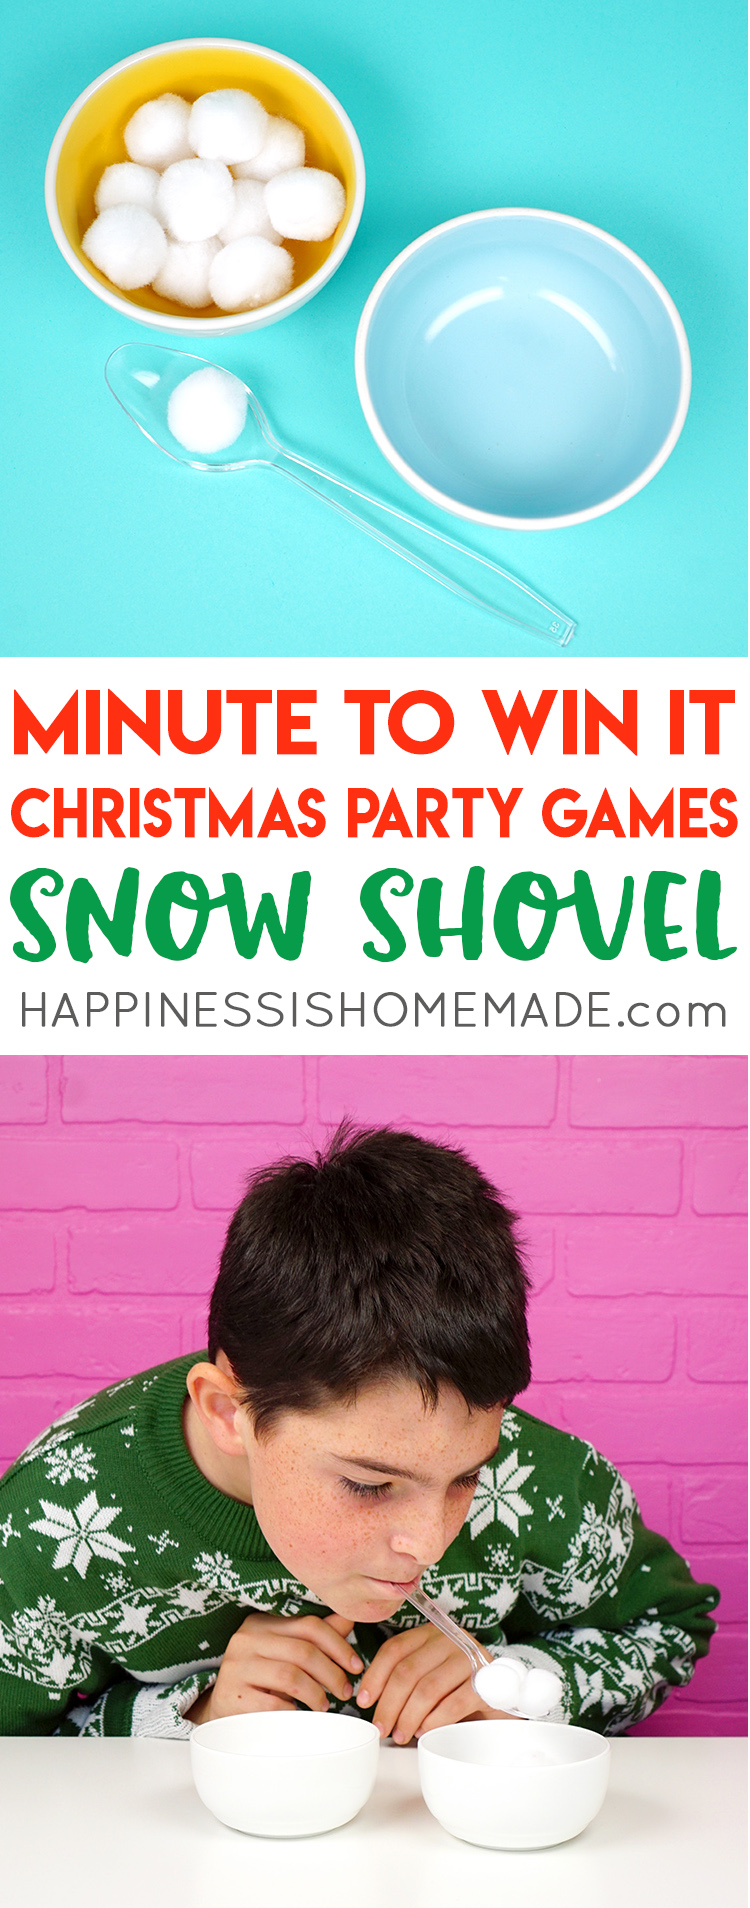 Minute To Win It Christmas Games.Minute To Win It Christmas Games For All Ages Happiness Is